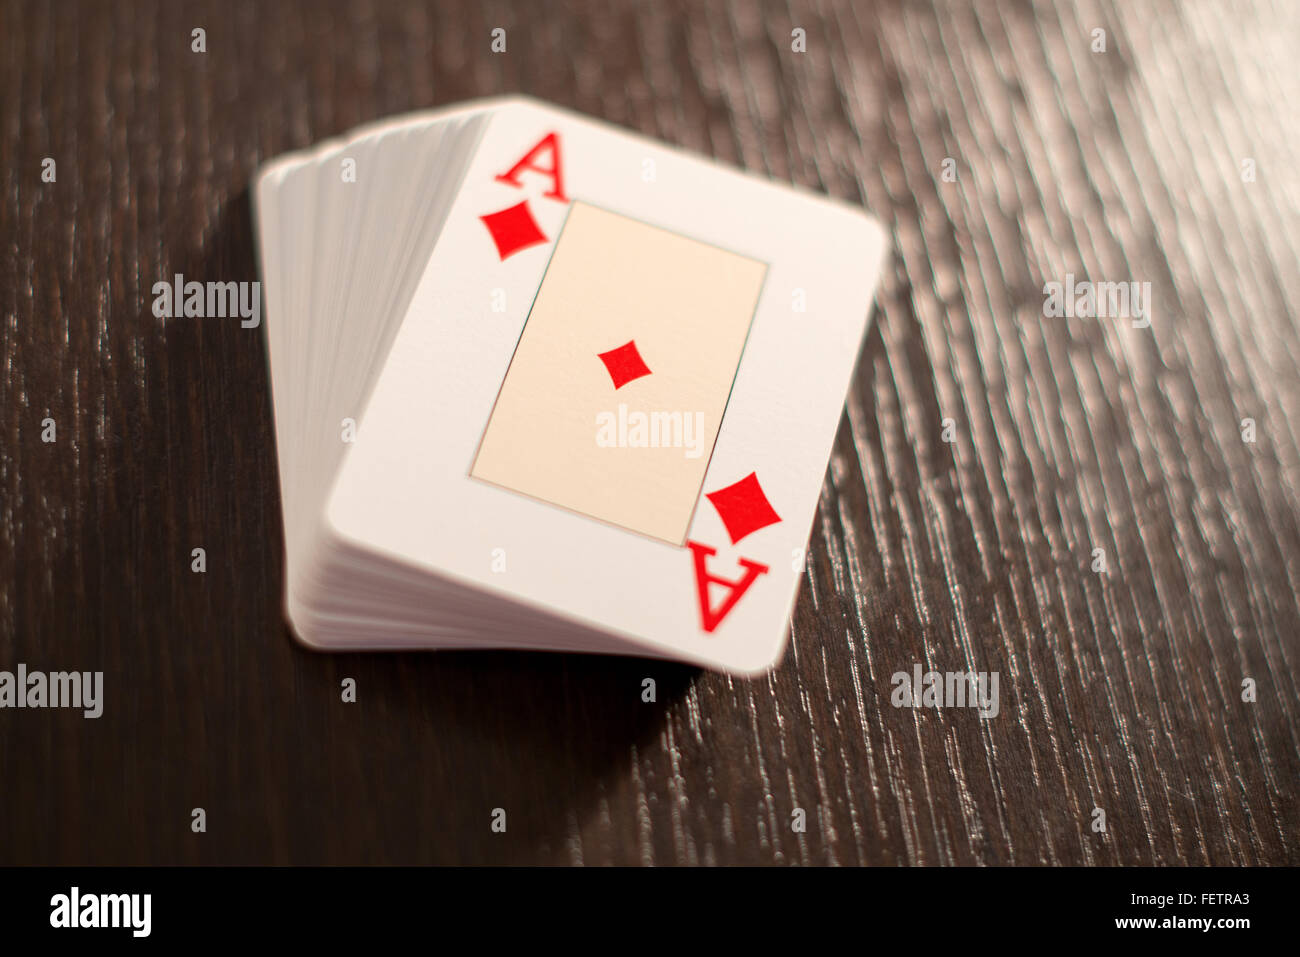 Stacked deck of playing cards showing the ace of diamonds on the top on a textured wooden table with back light - Stock Image